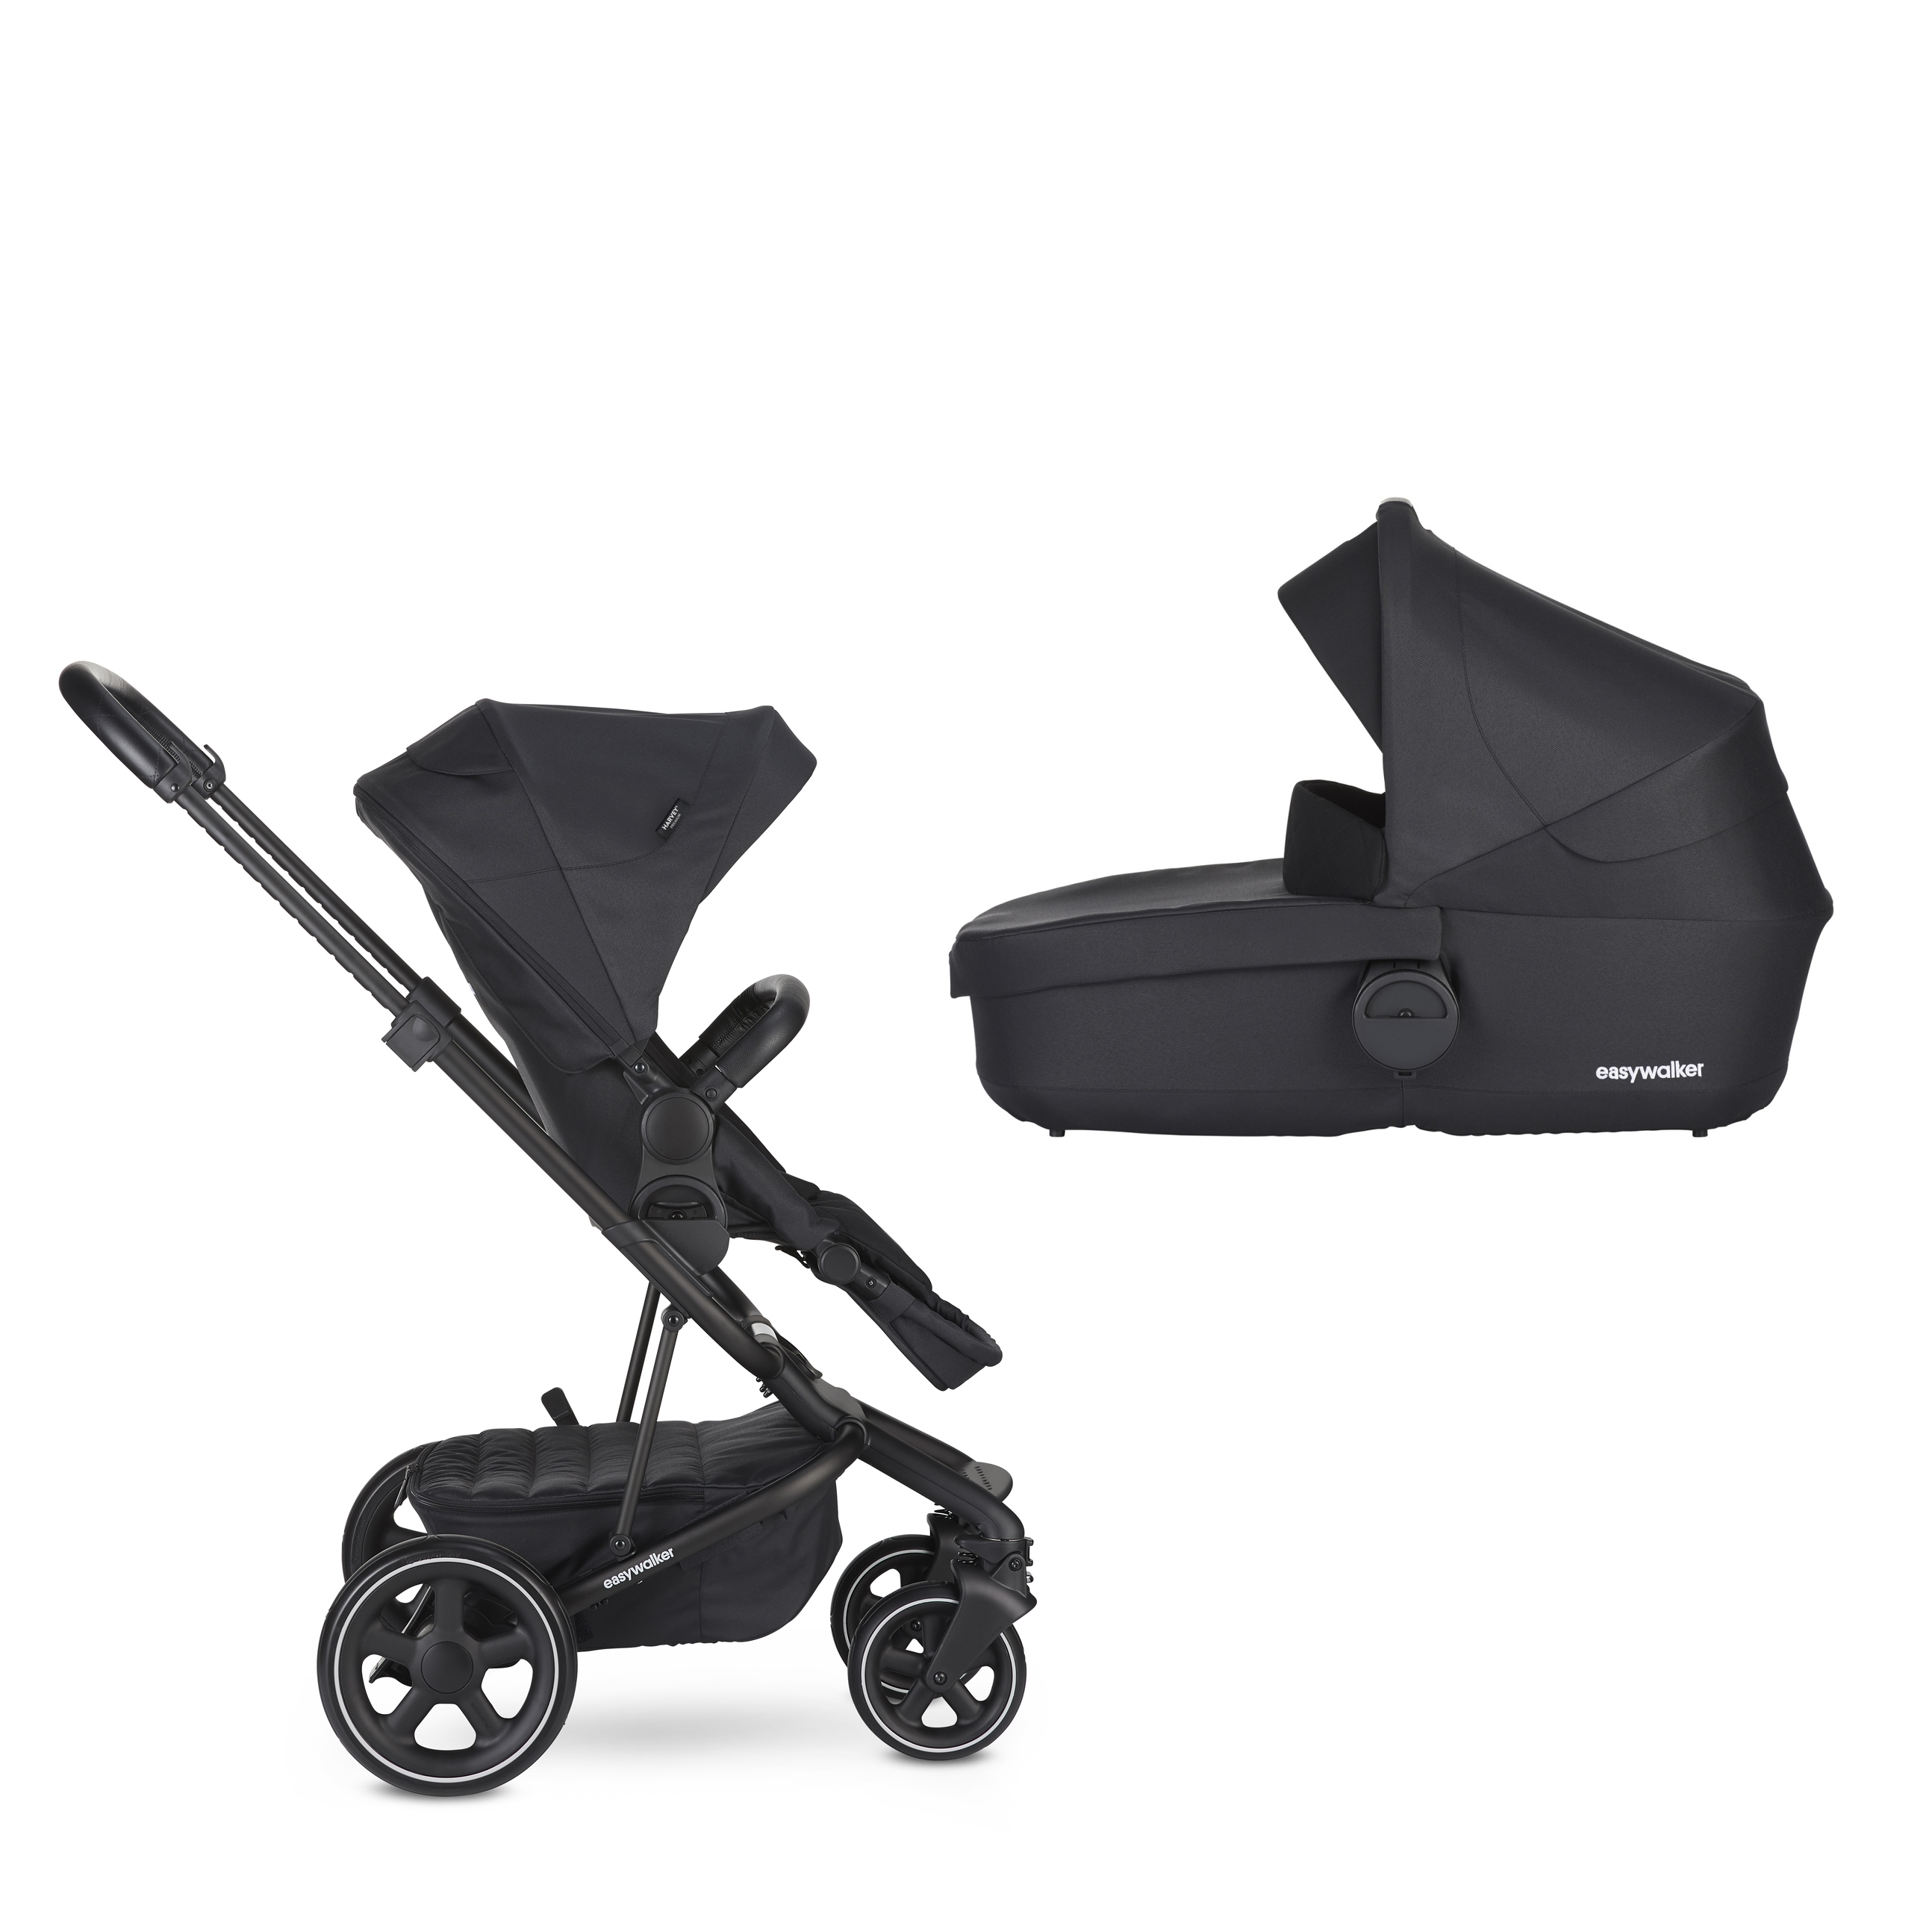 EASYWALKER Kočárek Harvey2 Premium Onyx Black 2020 - set